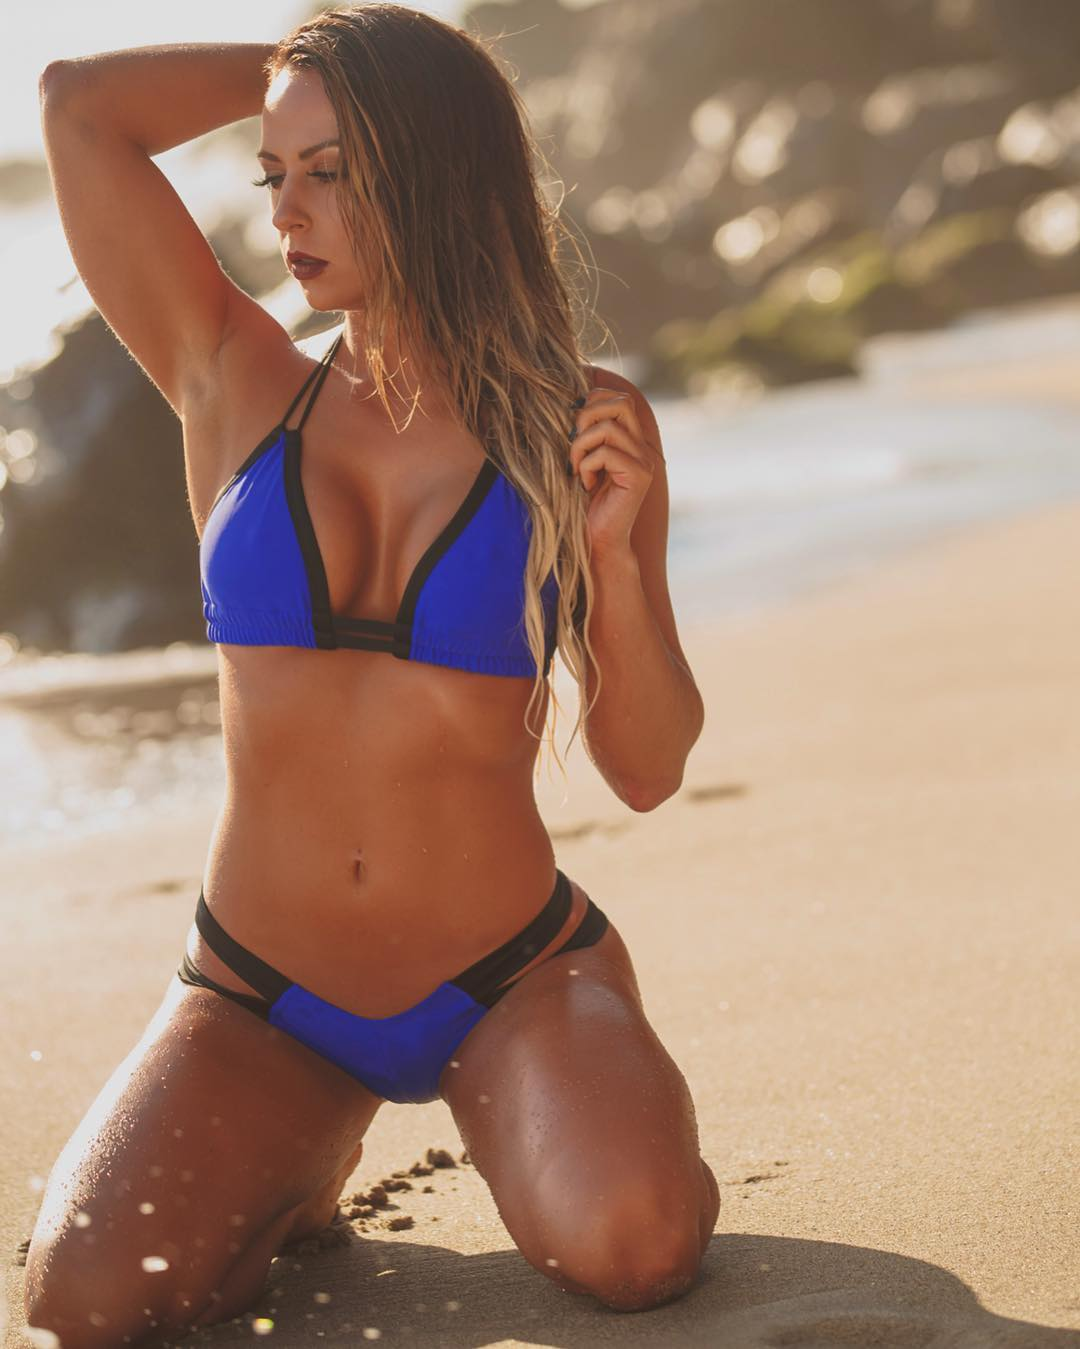 Tenille Dashwood Sexy Boobs Pictures on Blue Bikini